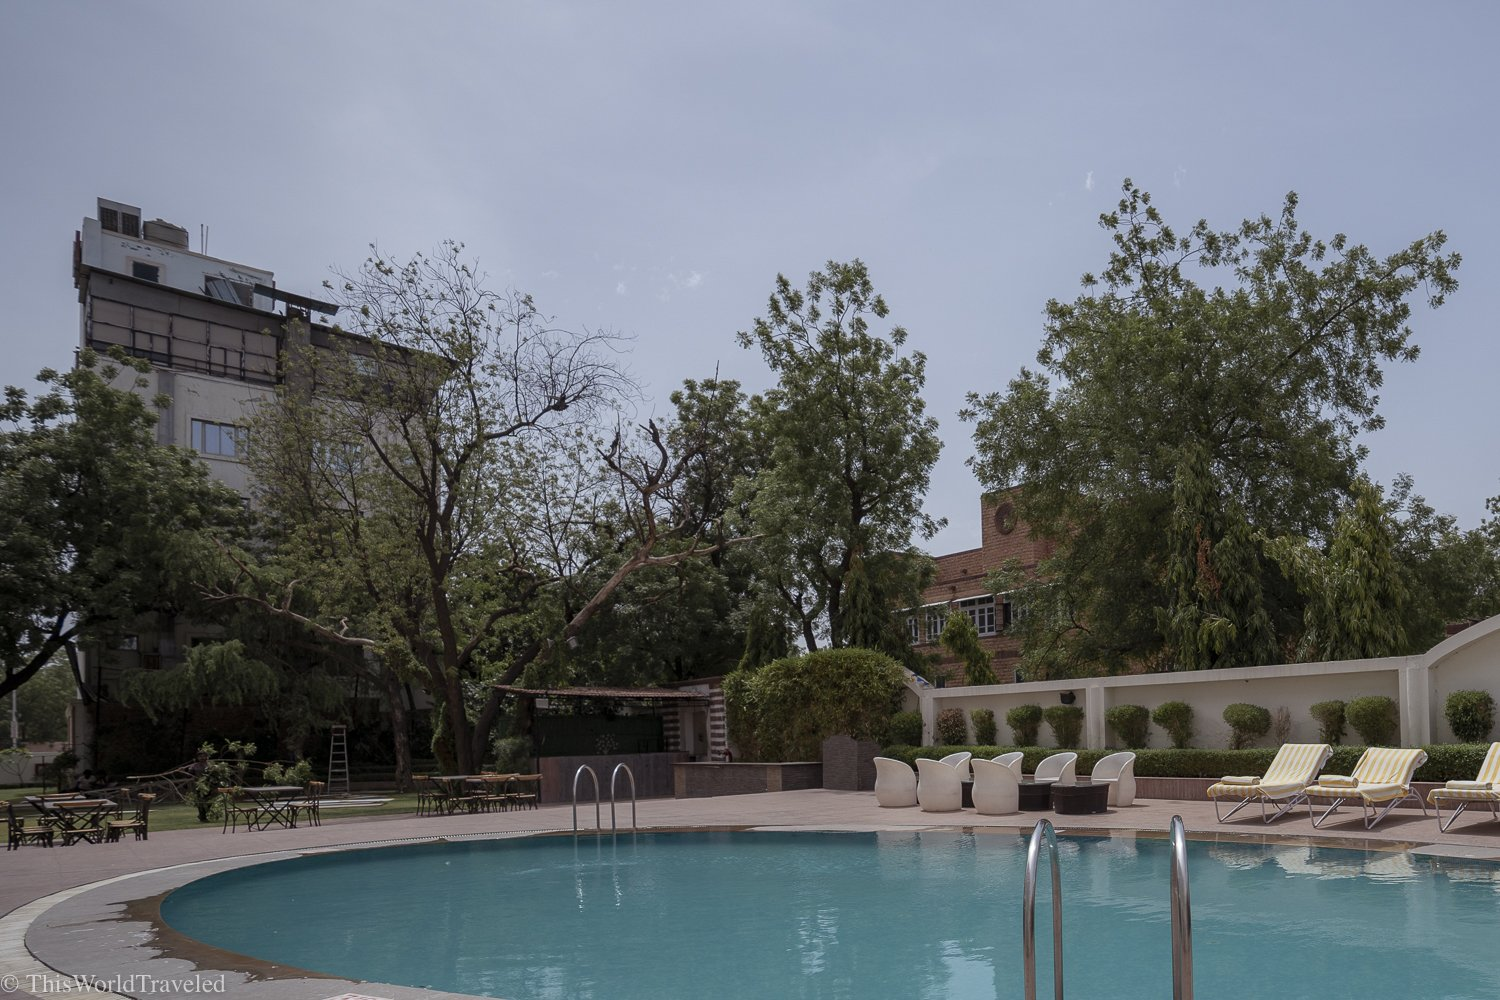 A pool at the Park Plaza hotel in Jodhpur